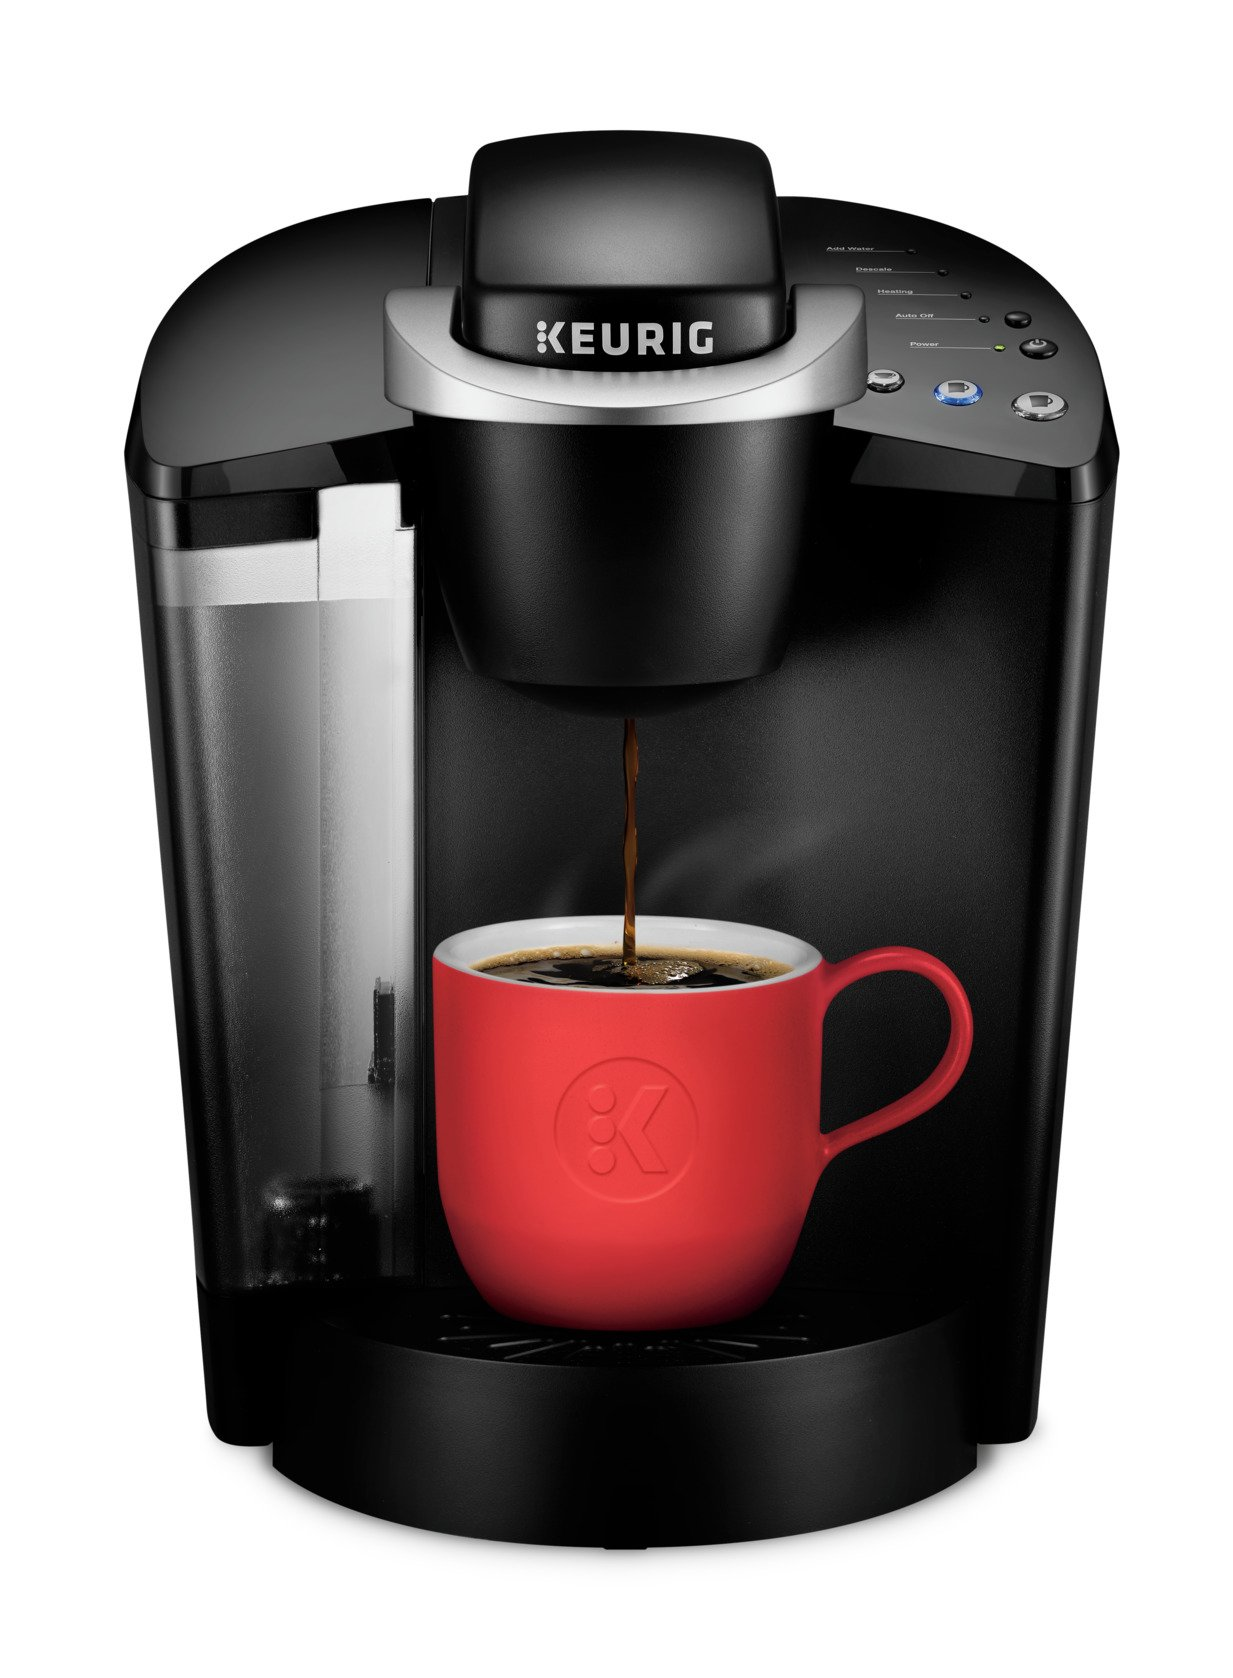 Keurig K55/K-Classic Coffee Maker, K-Cup Pod, Single Serve, Programmable, Black by Keurig